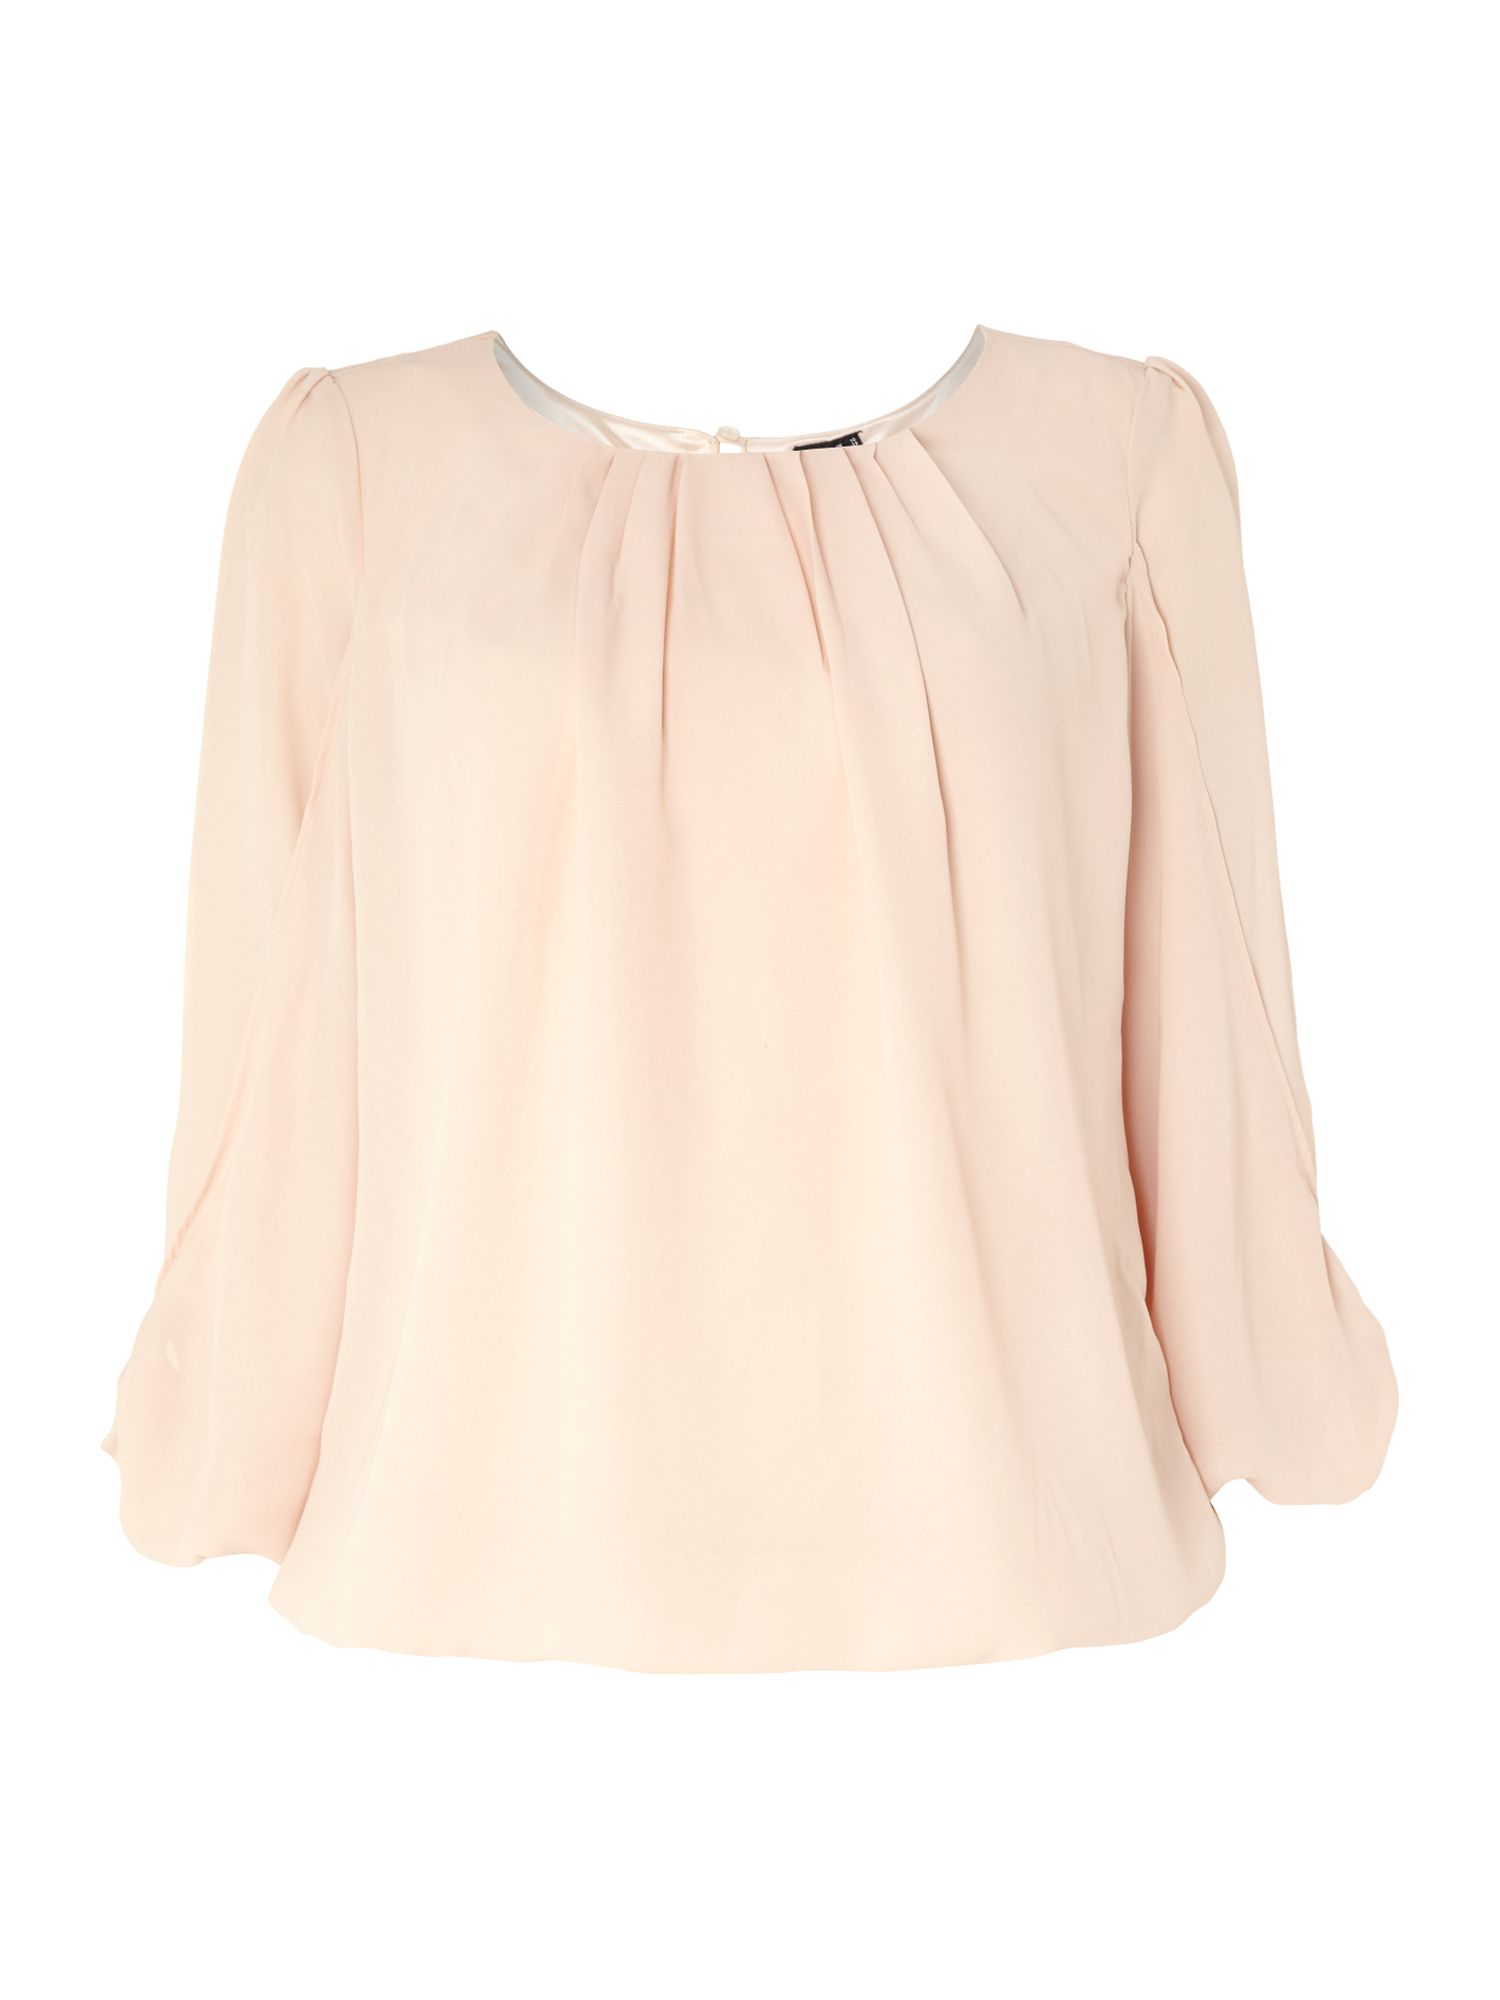 Chiffon top with arm detail